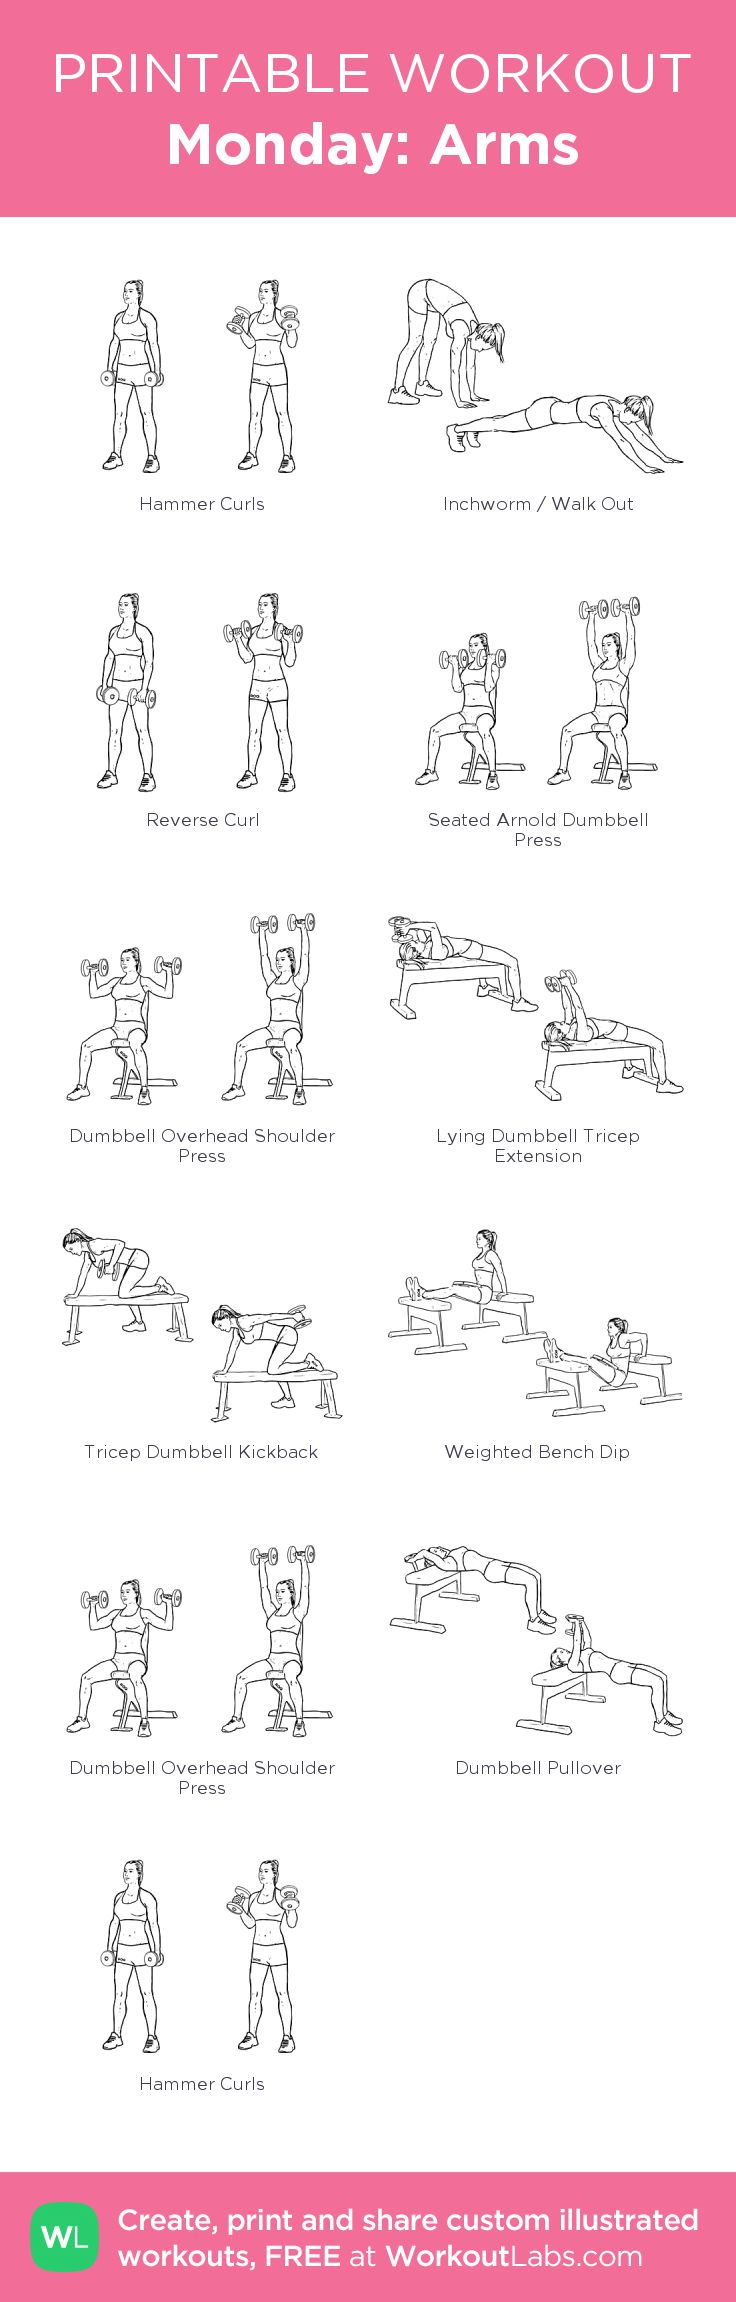 Monday: Arms : my visual workout created at WorkoutLabs.com • Click through to customize and download as a FREE PDF! #customworkout